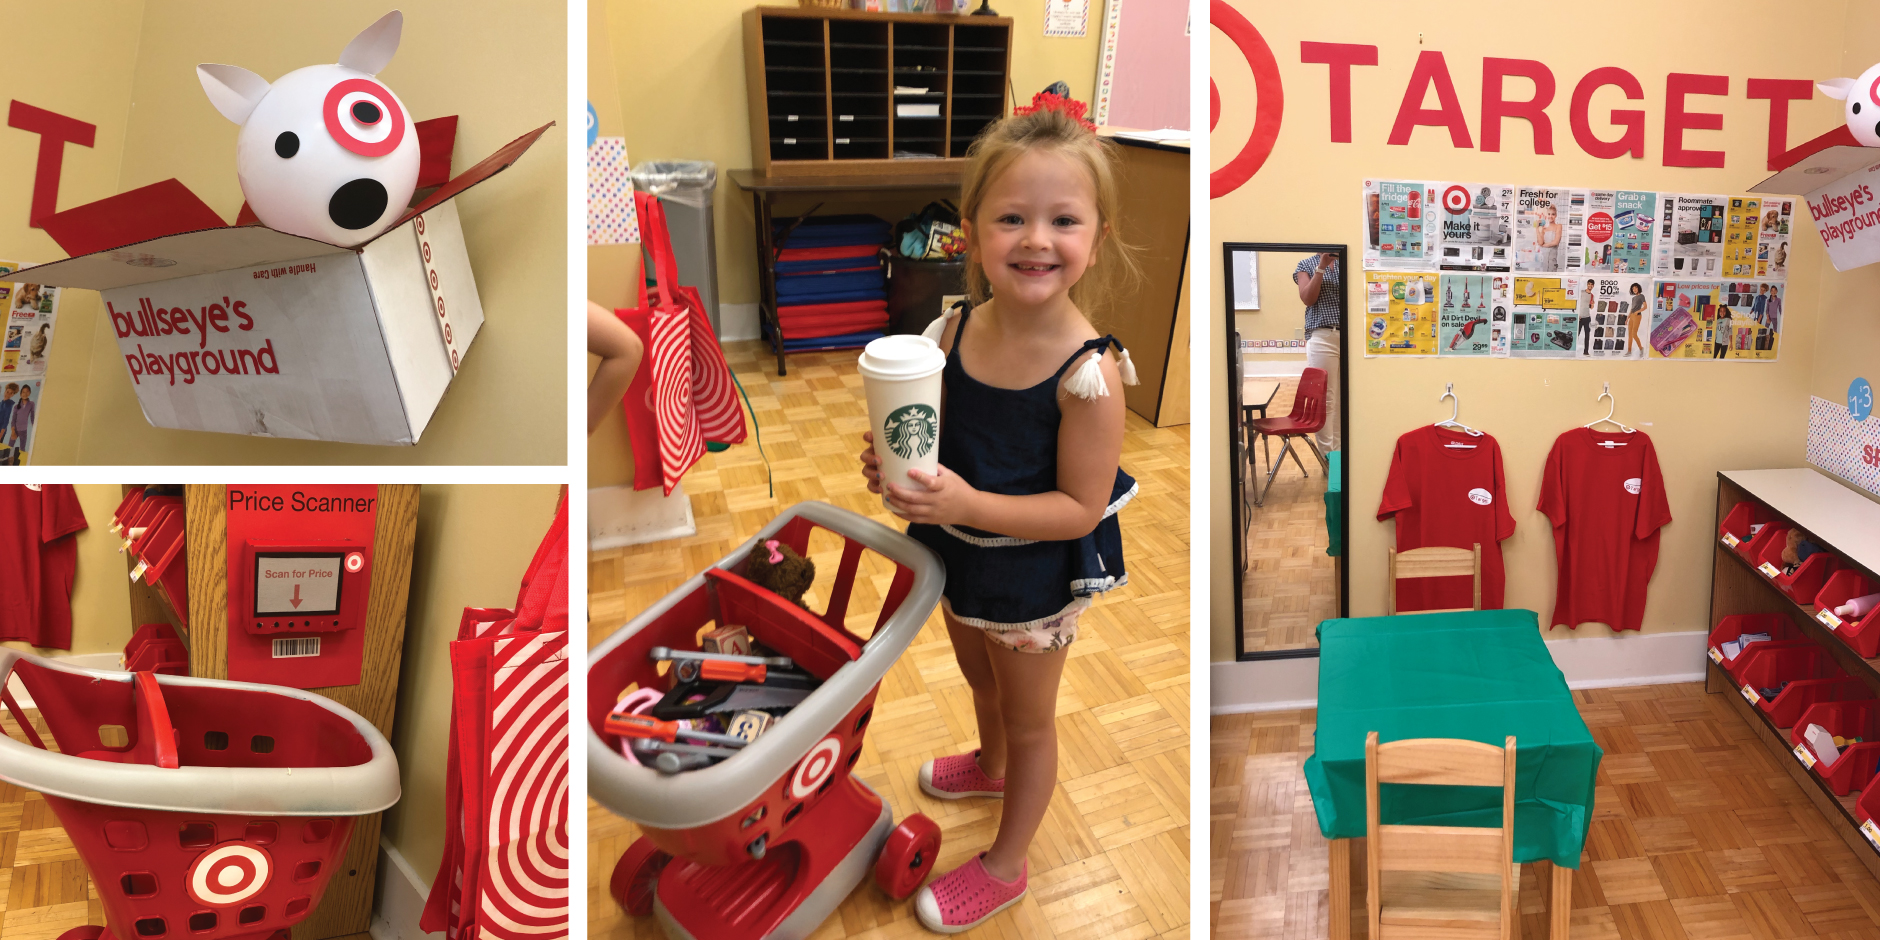 collage of images of miniature Target store items in a classroom